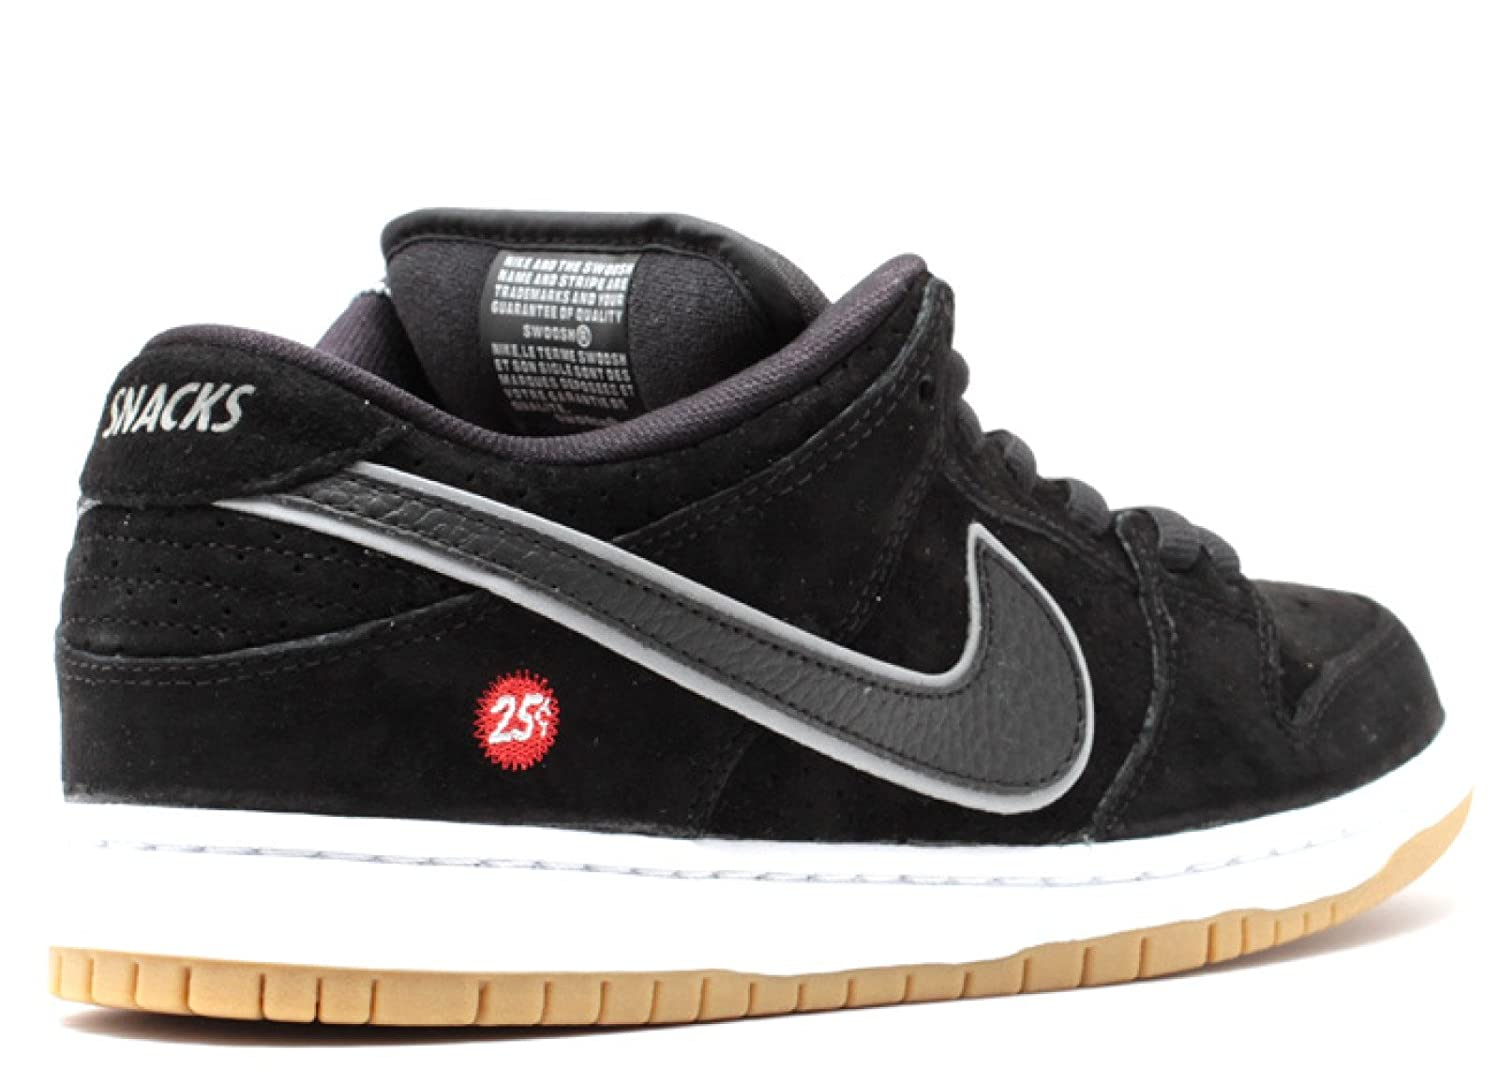 finest selection 67fe3 a3139 Nike Dunk Low SB 'QUARTERSNACKS' - 313170-019: Amazon.in ...